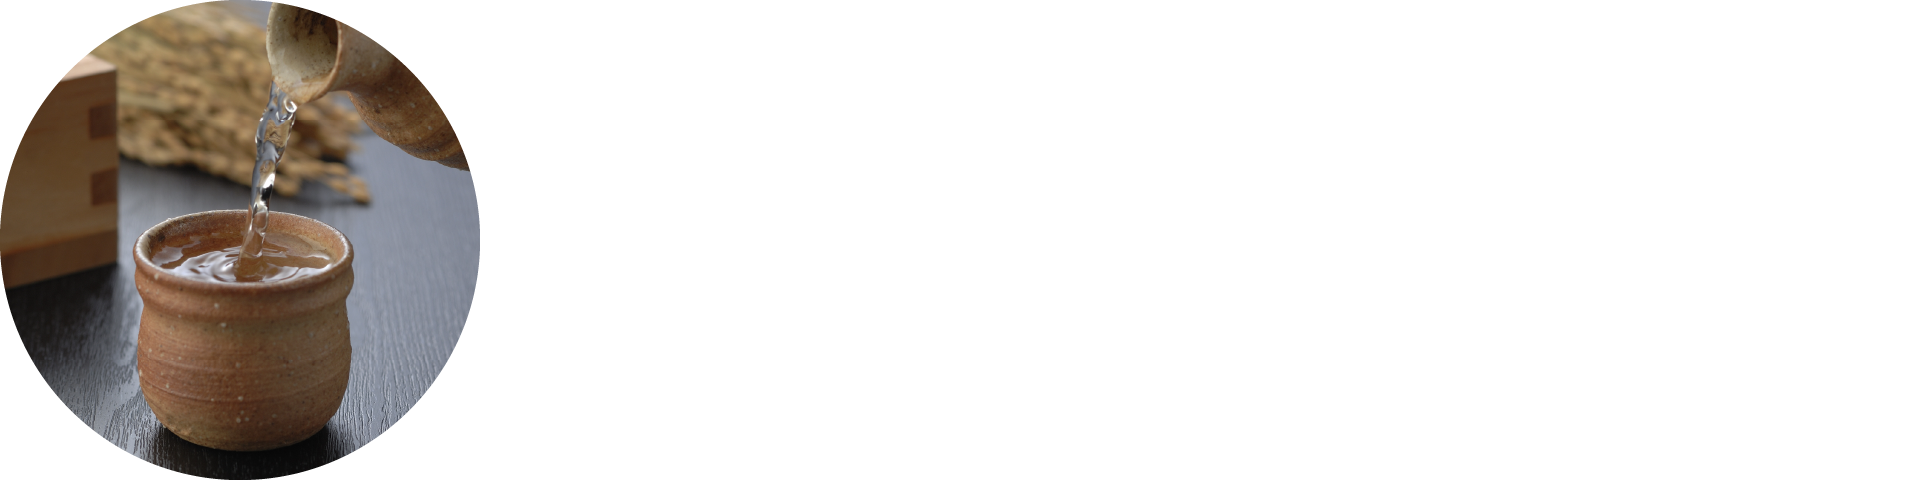 2020 JNTO Campaign Special Offer: